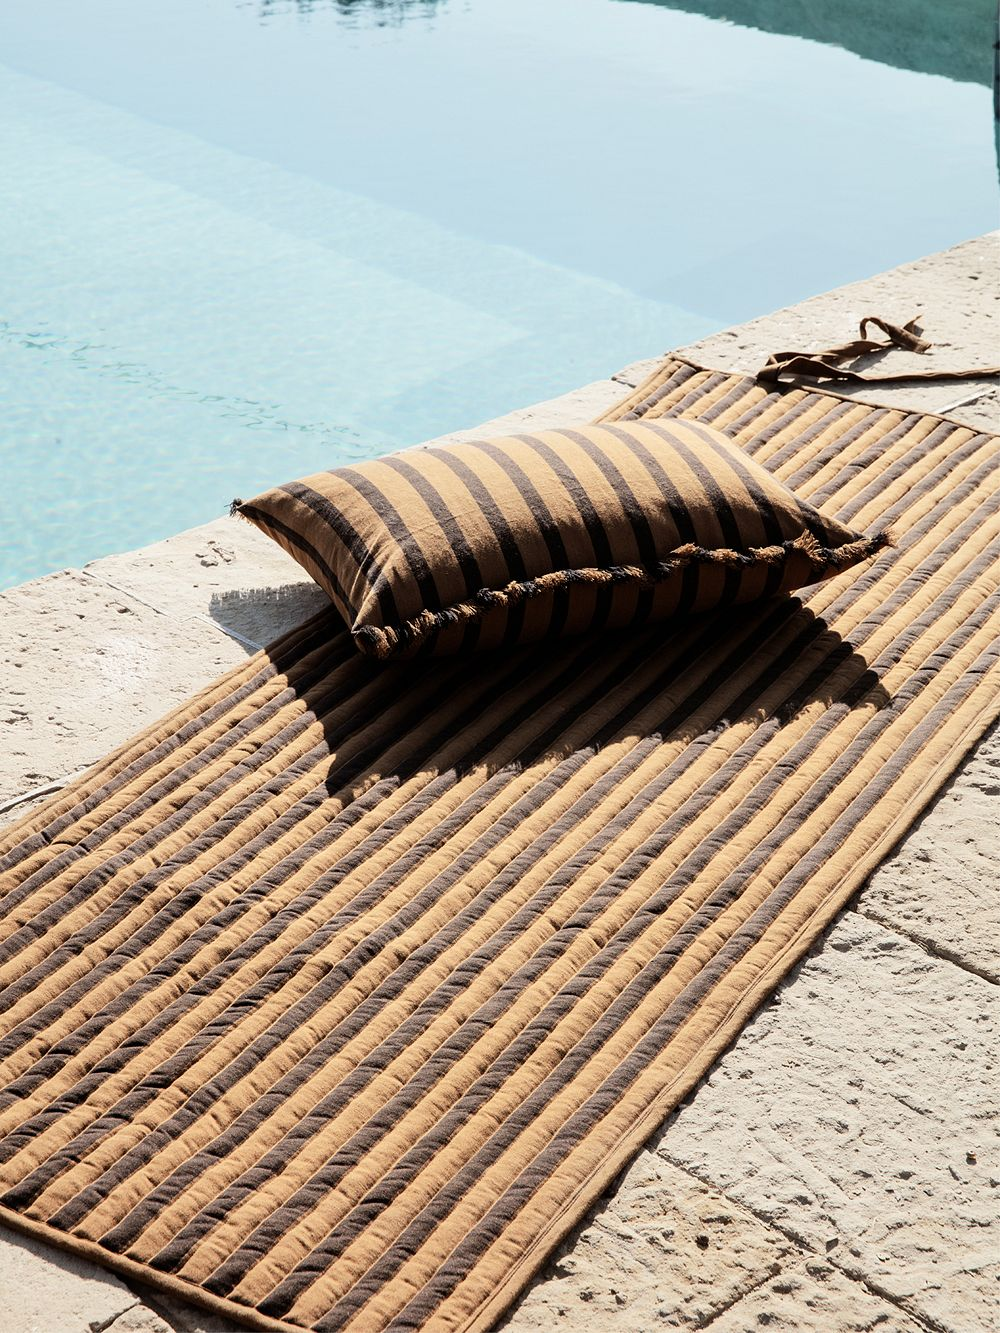 Ferm Living's Way cushion beside a swimming pool.